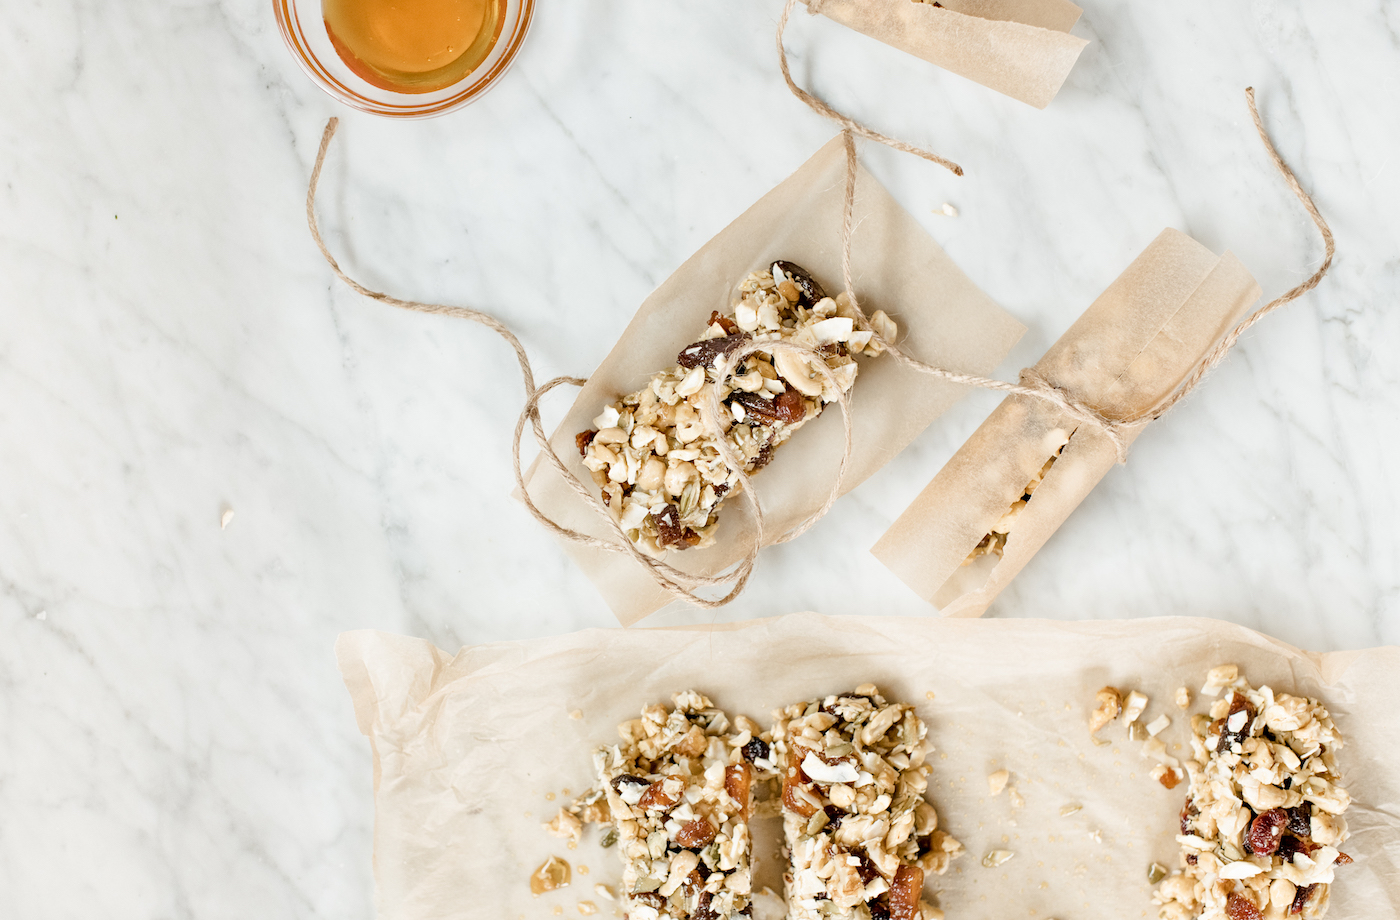 These nutty homemade granola bars will make you wonder why you even bother with the store-bought kind